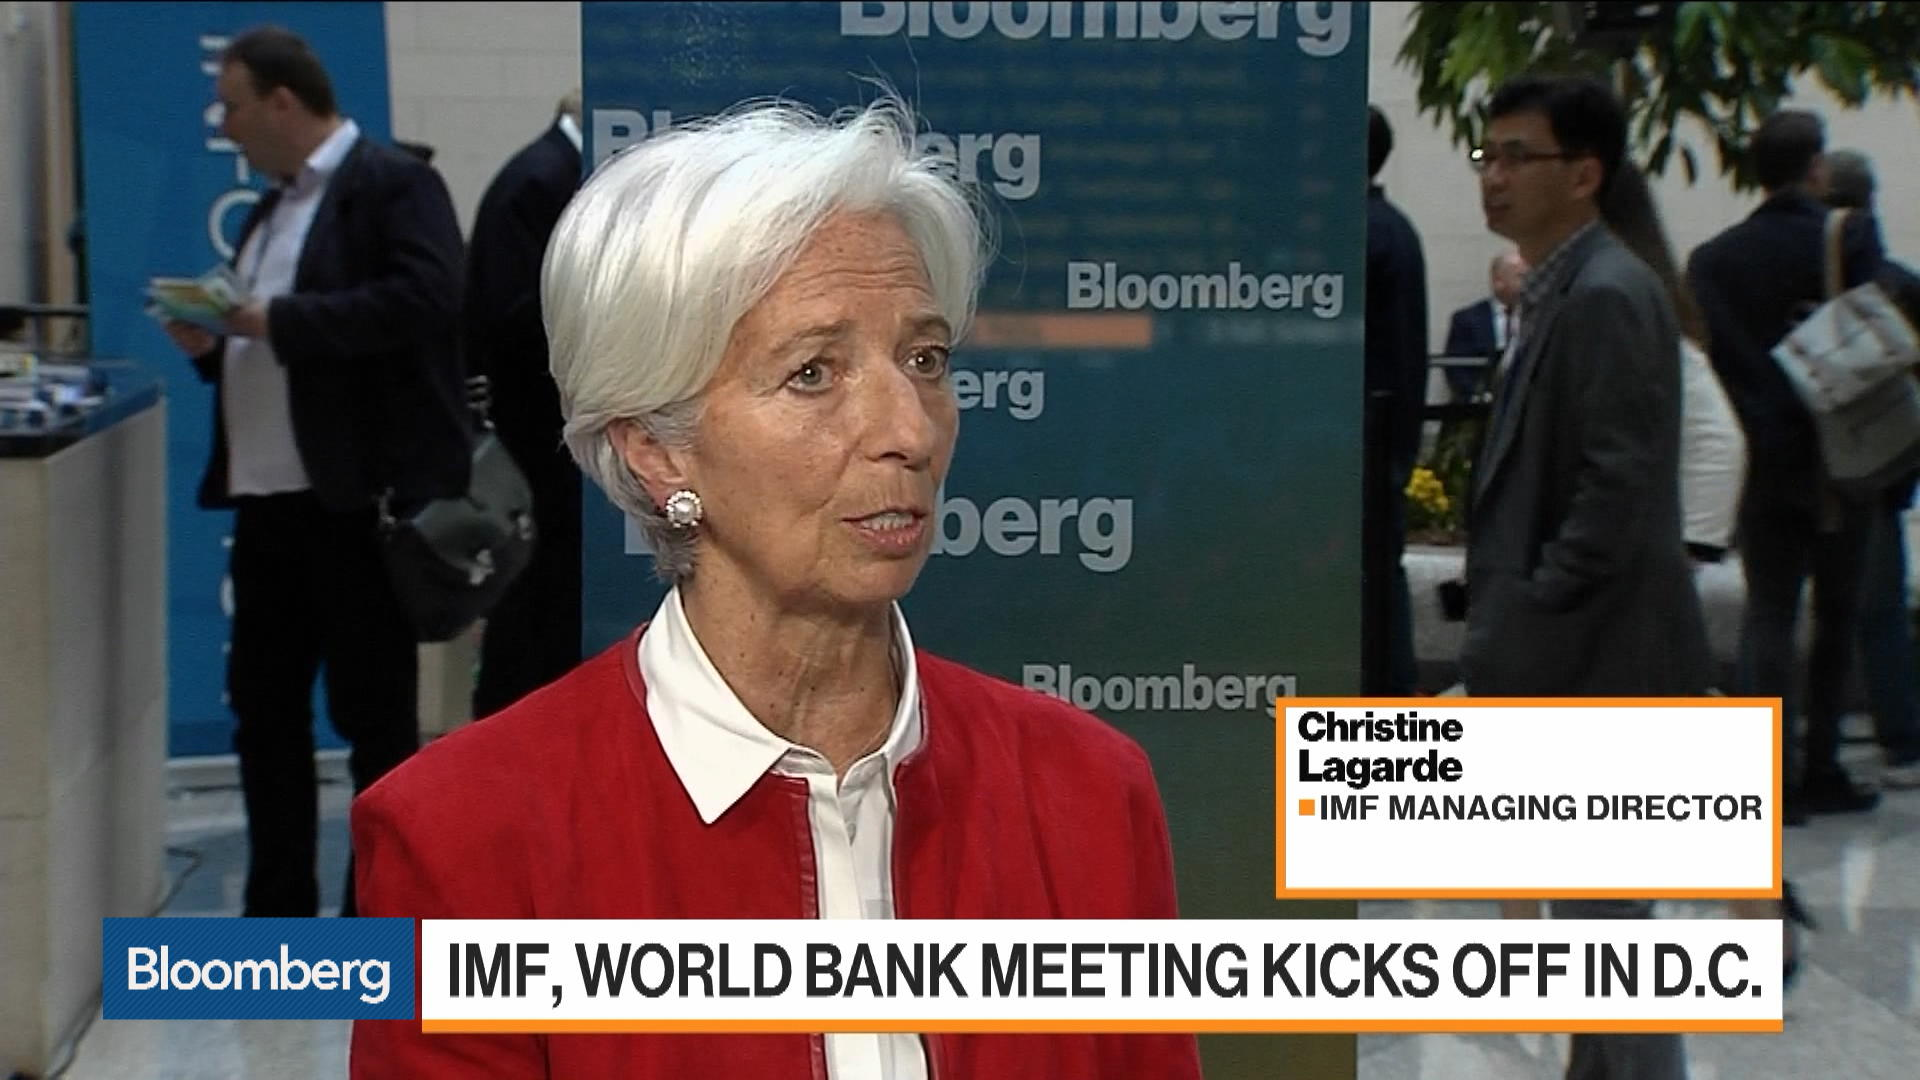 IMF's Lagarde on Global Growth, Trade, Brexit, China